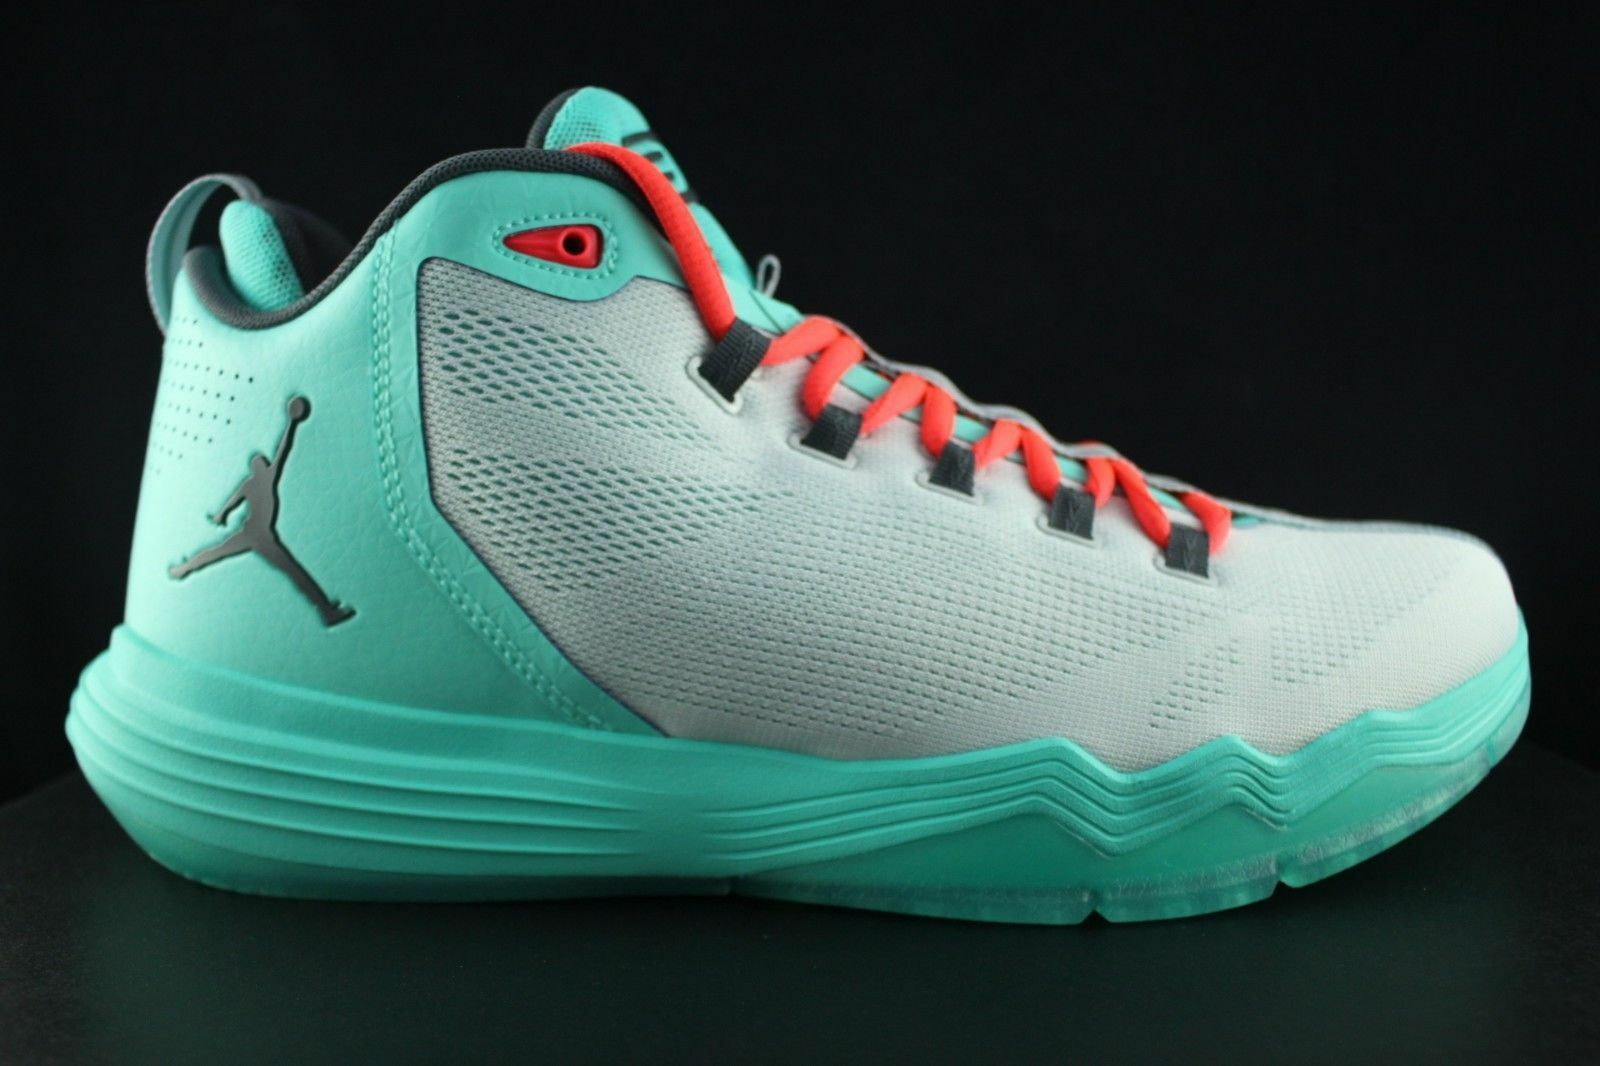 7209be14e4e657 Nike Jordan Cp3.ix AE Mens 833909-016 Turquoise Infrared Basketball ...